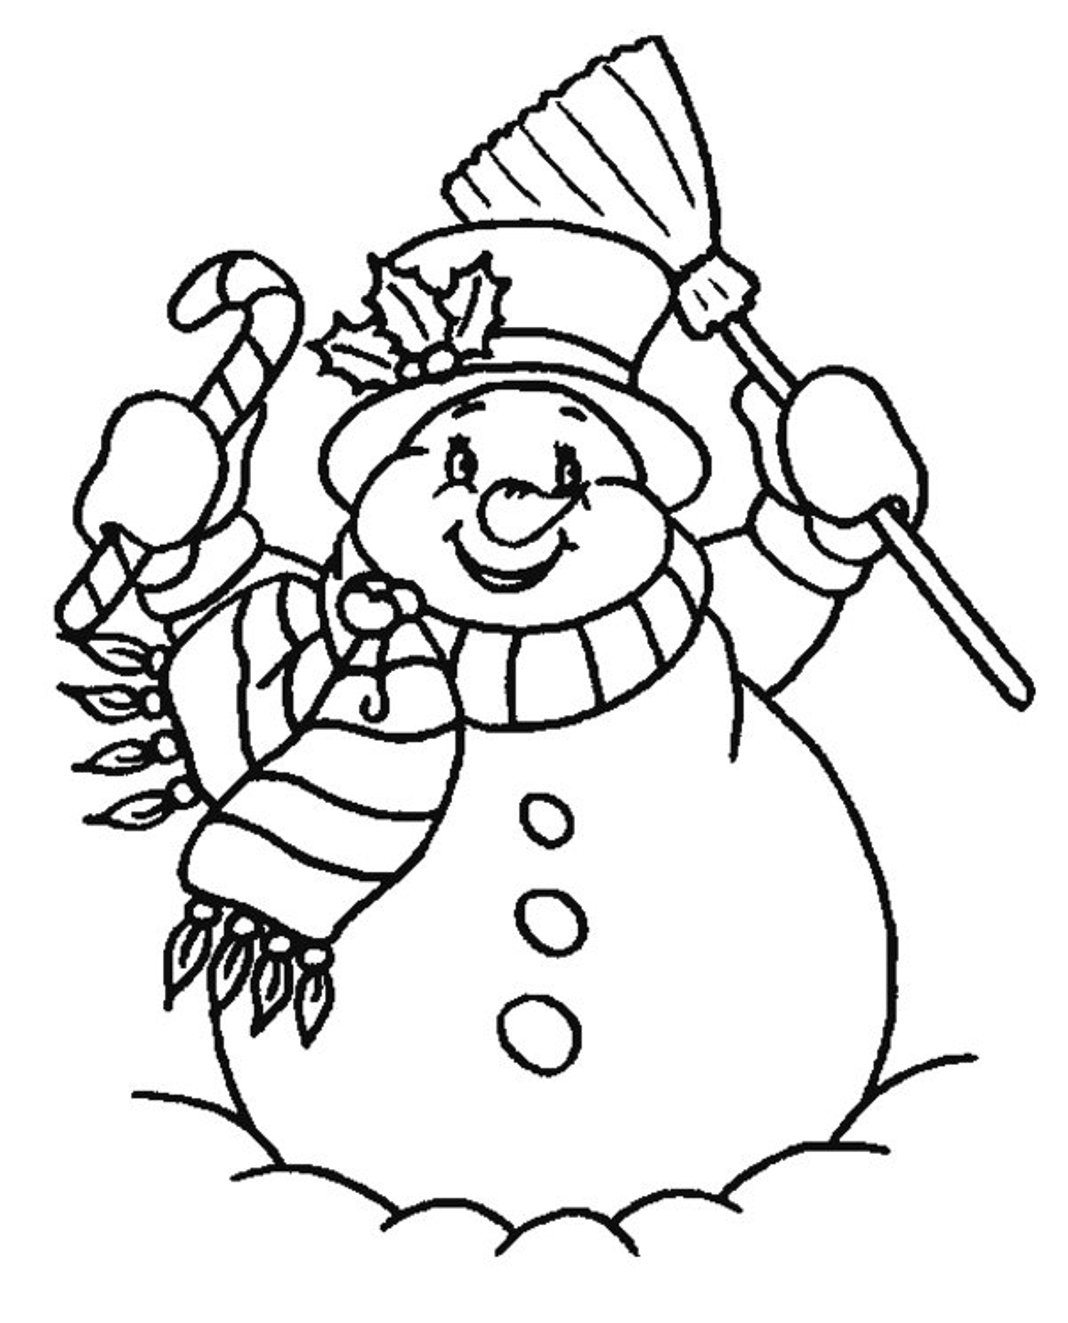 1068x1323 Snowman Coloring Pages For Kids Colouring In Fancy Draw